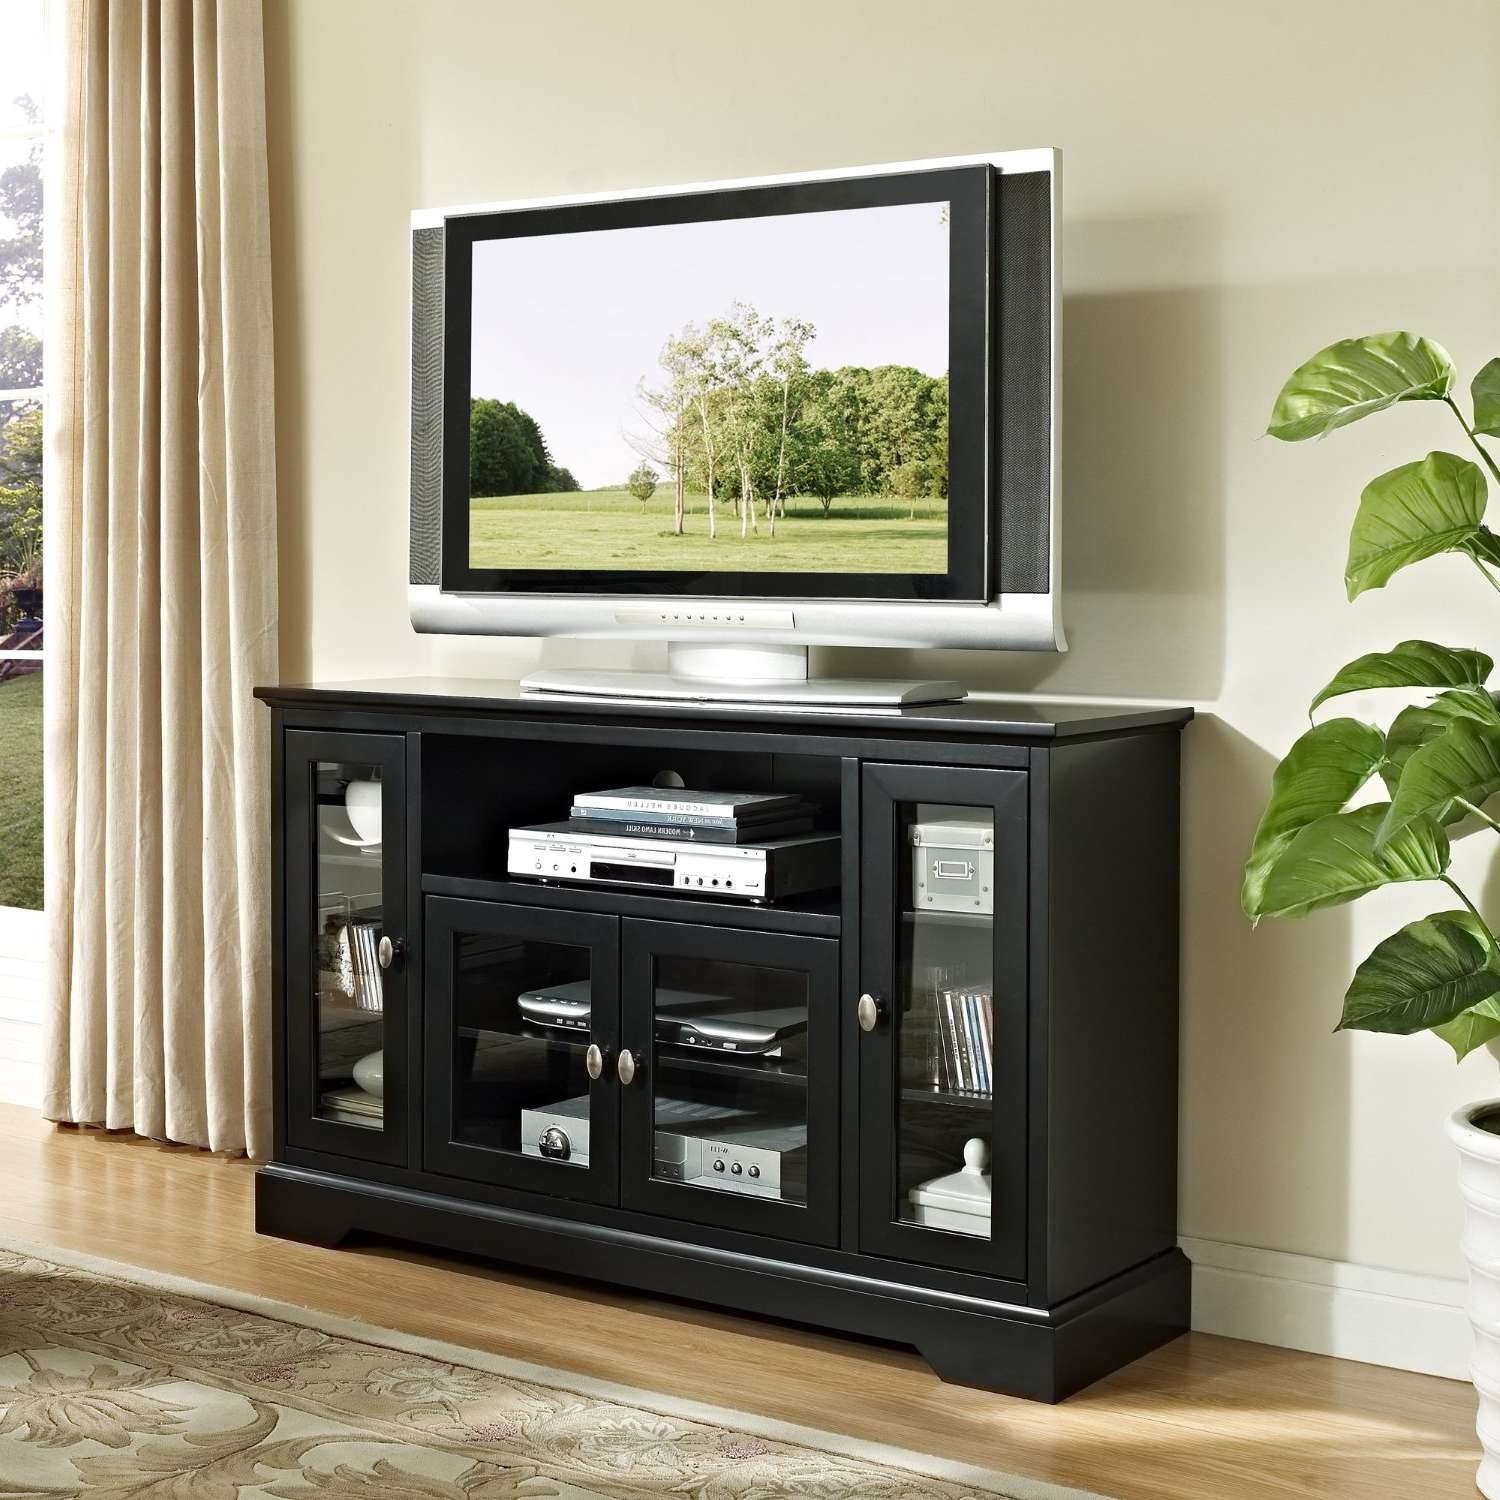 Tall Tv Stand For Bedroom And Bella Stands Trends Images For Wood Tv Stands With Glass Top (View 11 of 15)